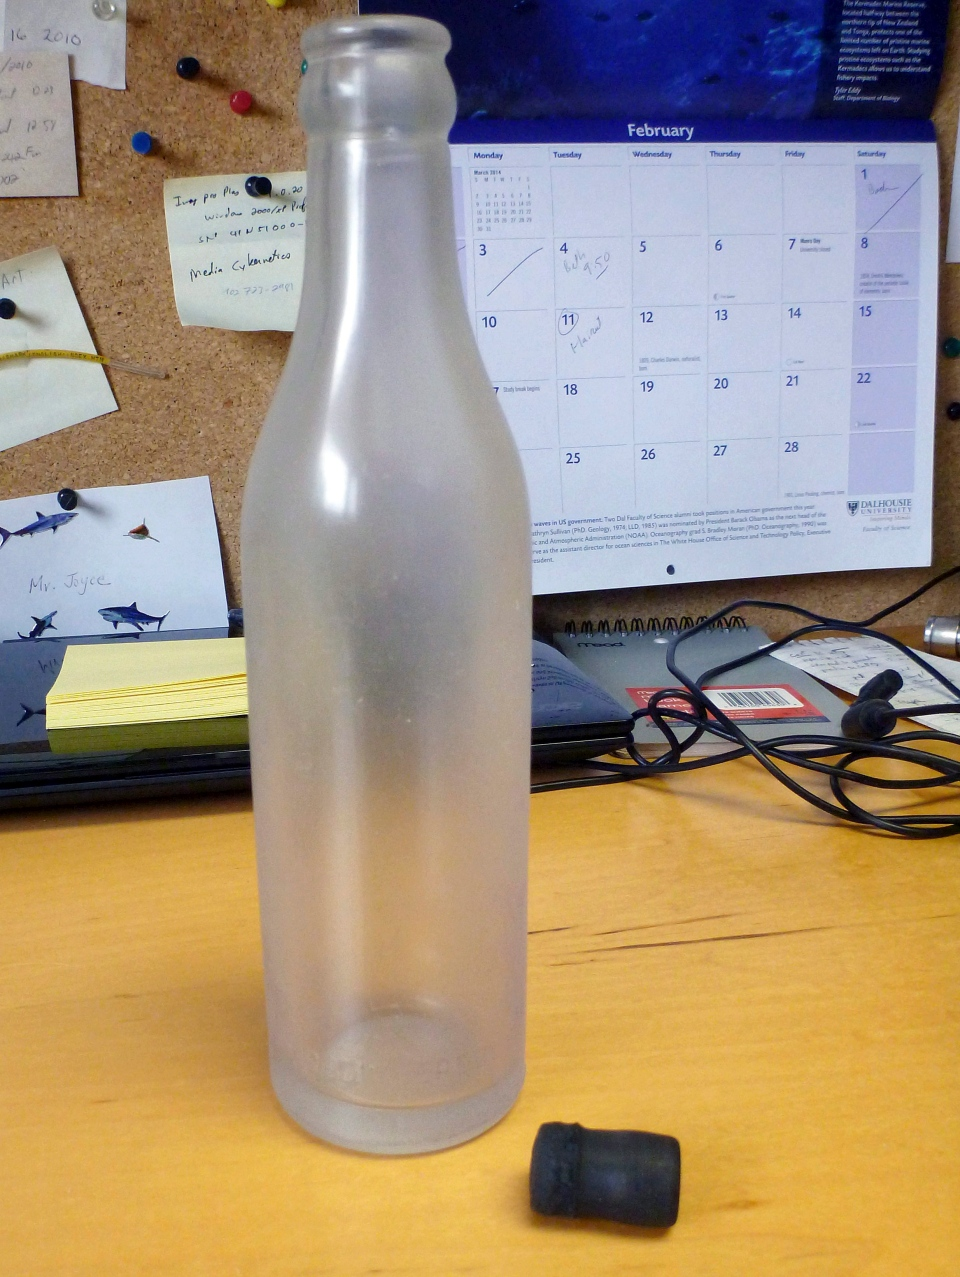 A message that was found inside a glass bottle is shown after being recovered on Sable Island, Nova Scotia, by biologist Warren N. Joyce of Canada's Department of Fisheries and Oceans in January 2014. (Woods Hole Oceanographic Institution / Warren N. Joyce)